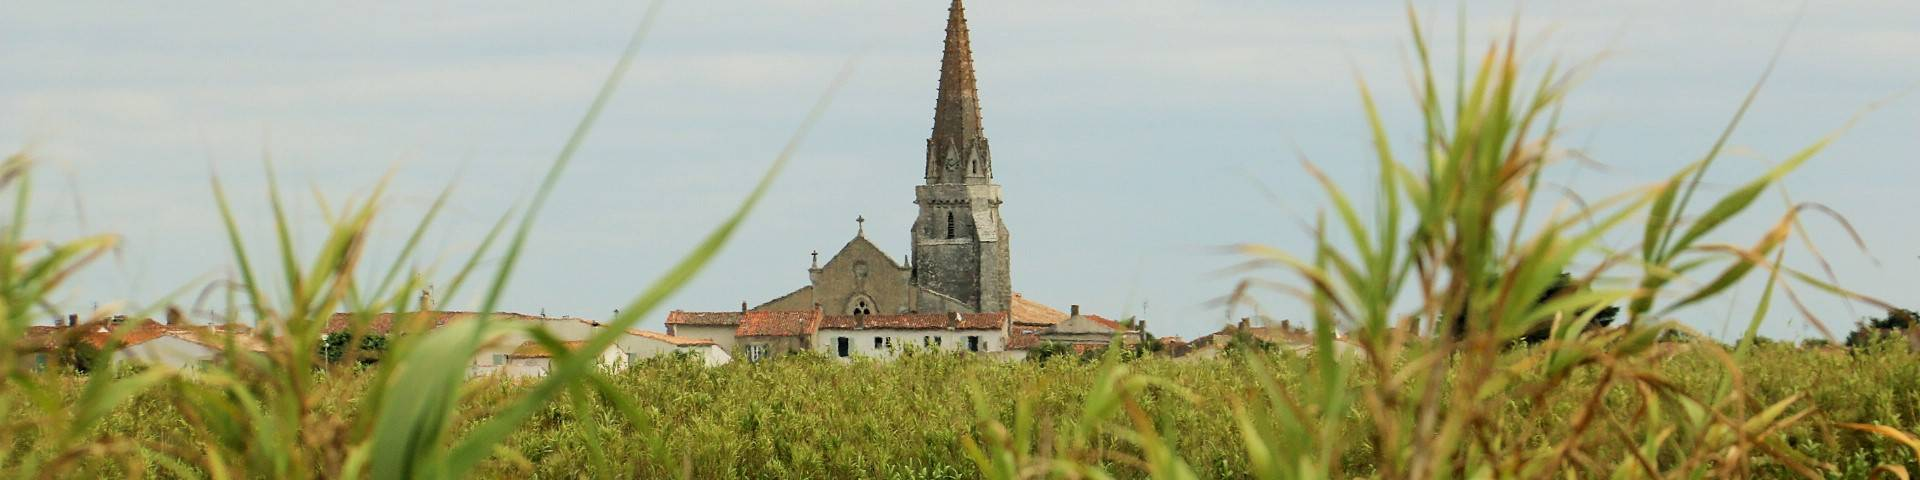 Saint-Marie-de-Ré Church by Lesley Williamson